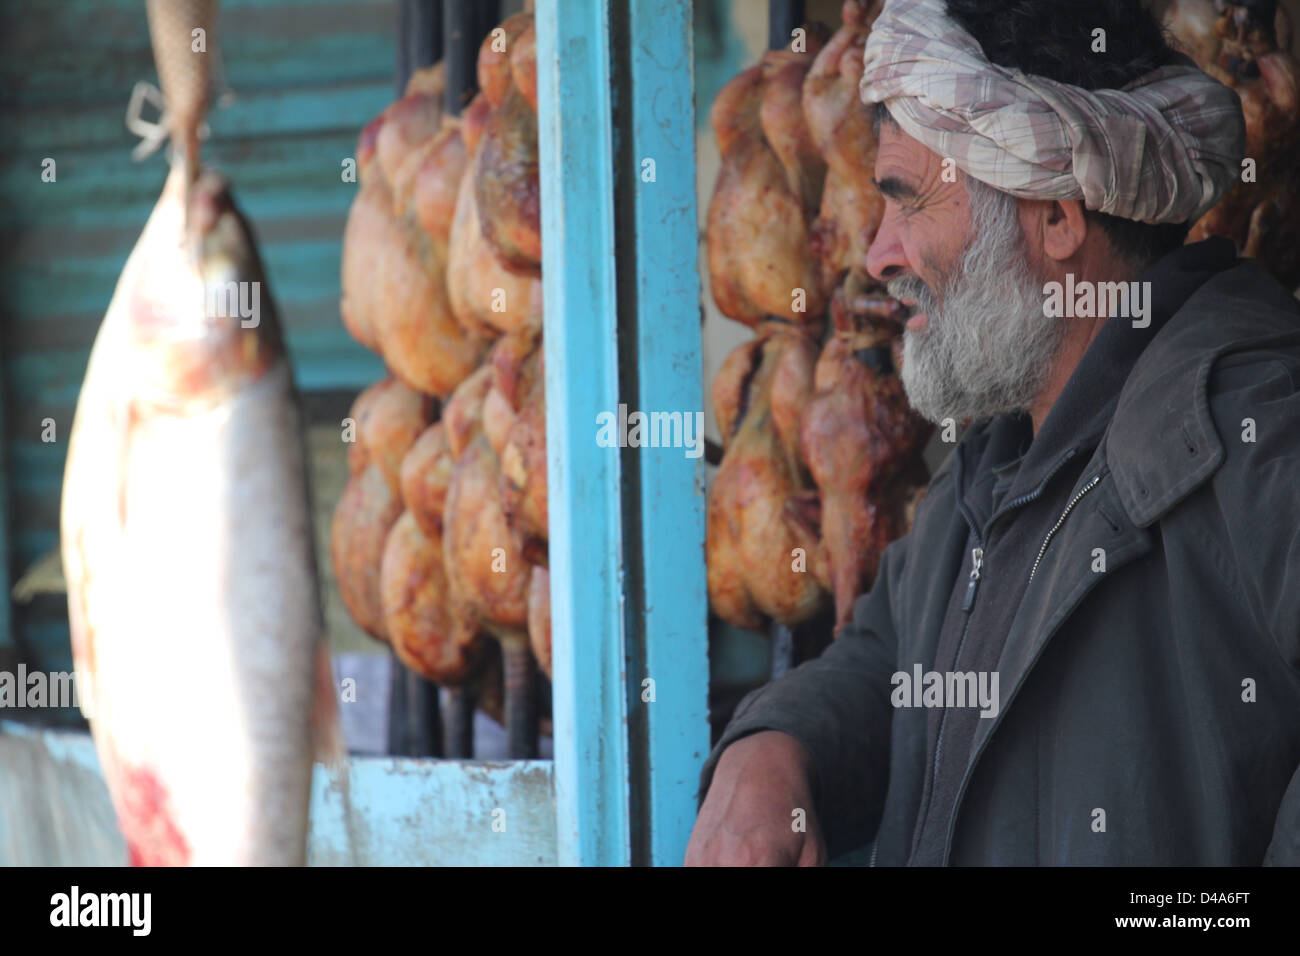 An Afghan male stares onto the street. - Stock Image